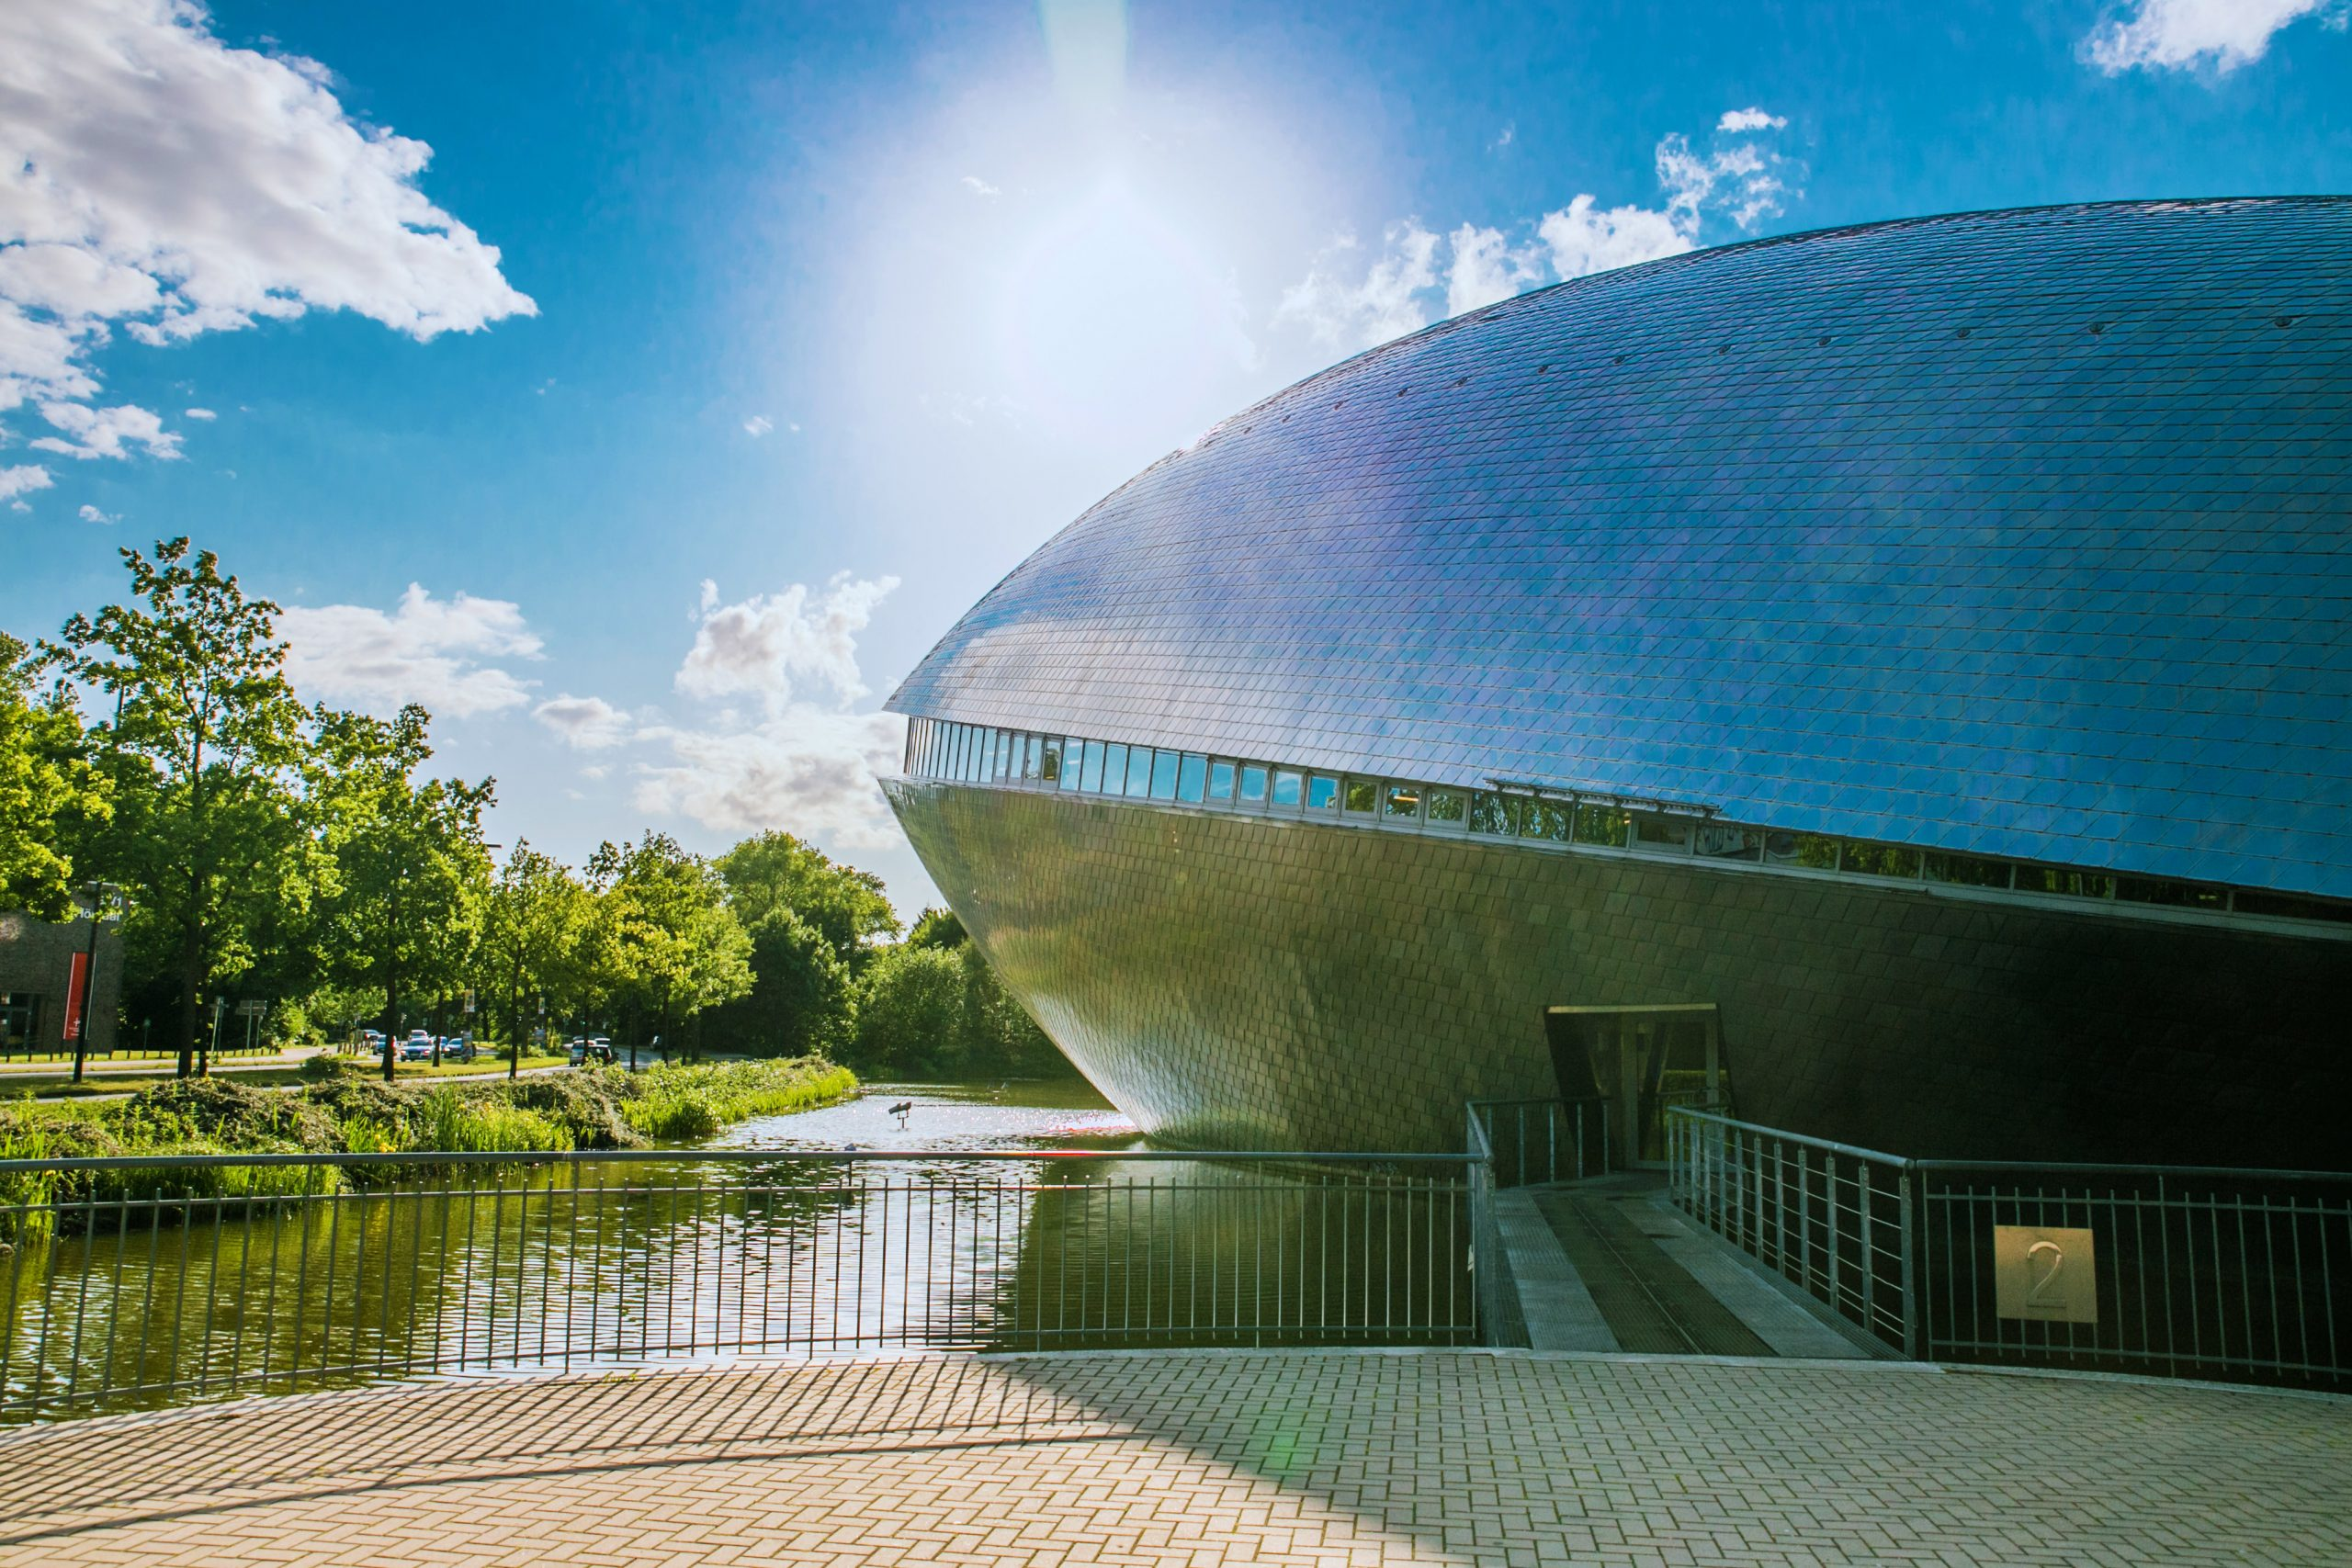 A shot of the Universum in Bremen on a sunny day.